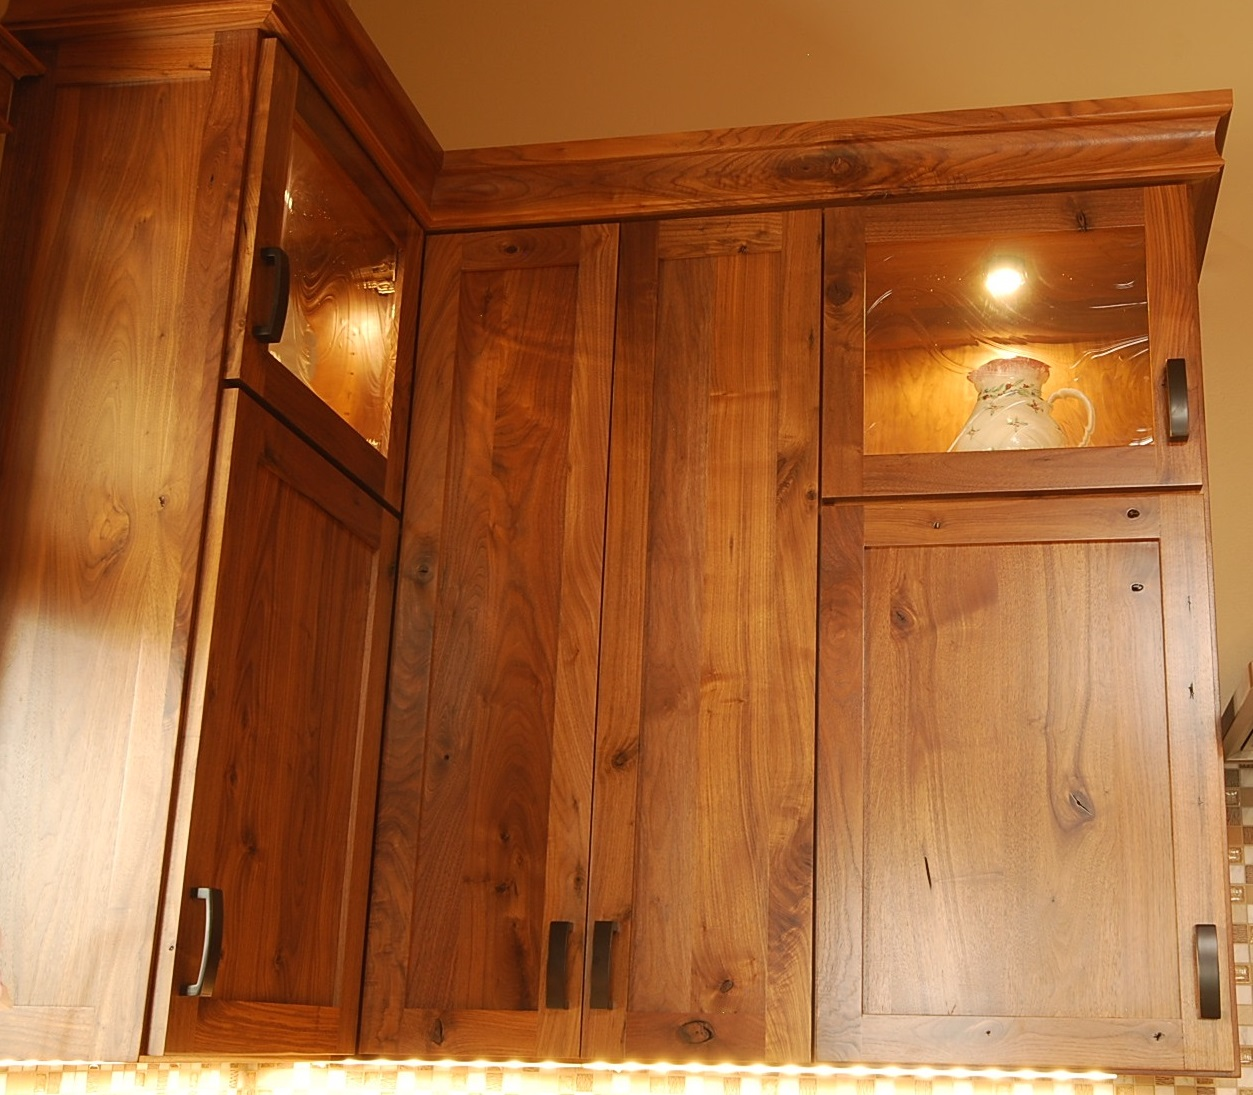 Rustic Walnut upper cabinets with antique wavy glass